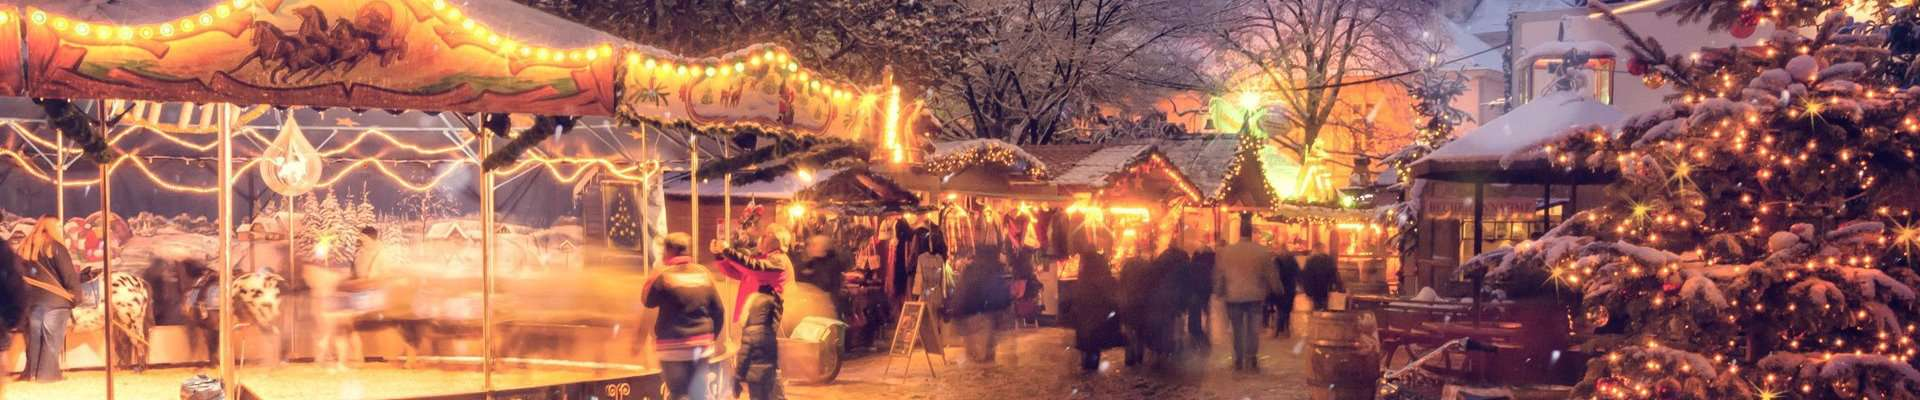 Archaeology Travel   Christmas Markets in Germany   3